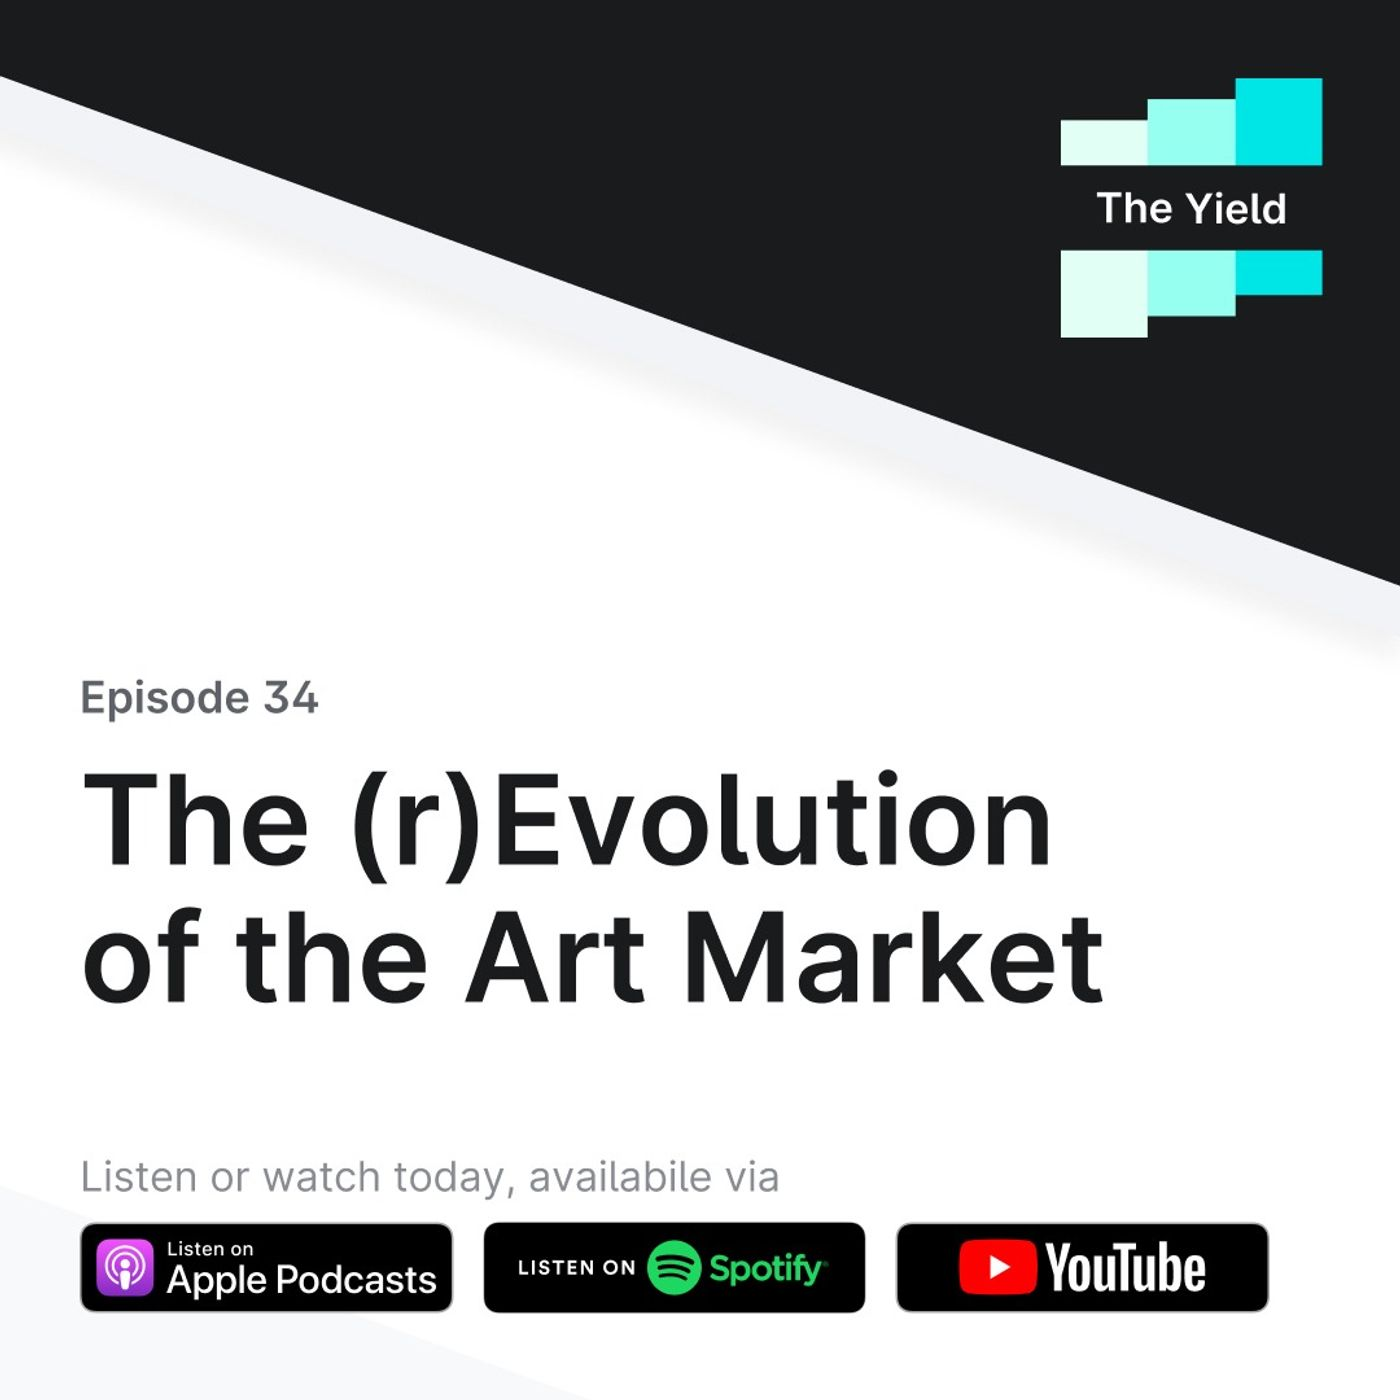 The (r)Evolution of the Art Market